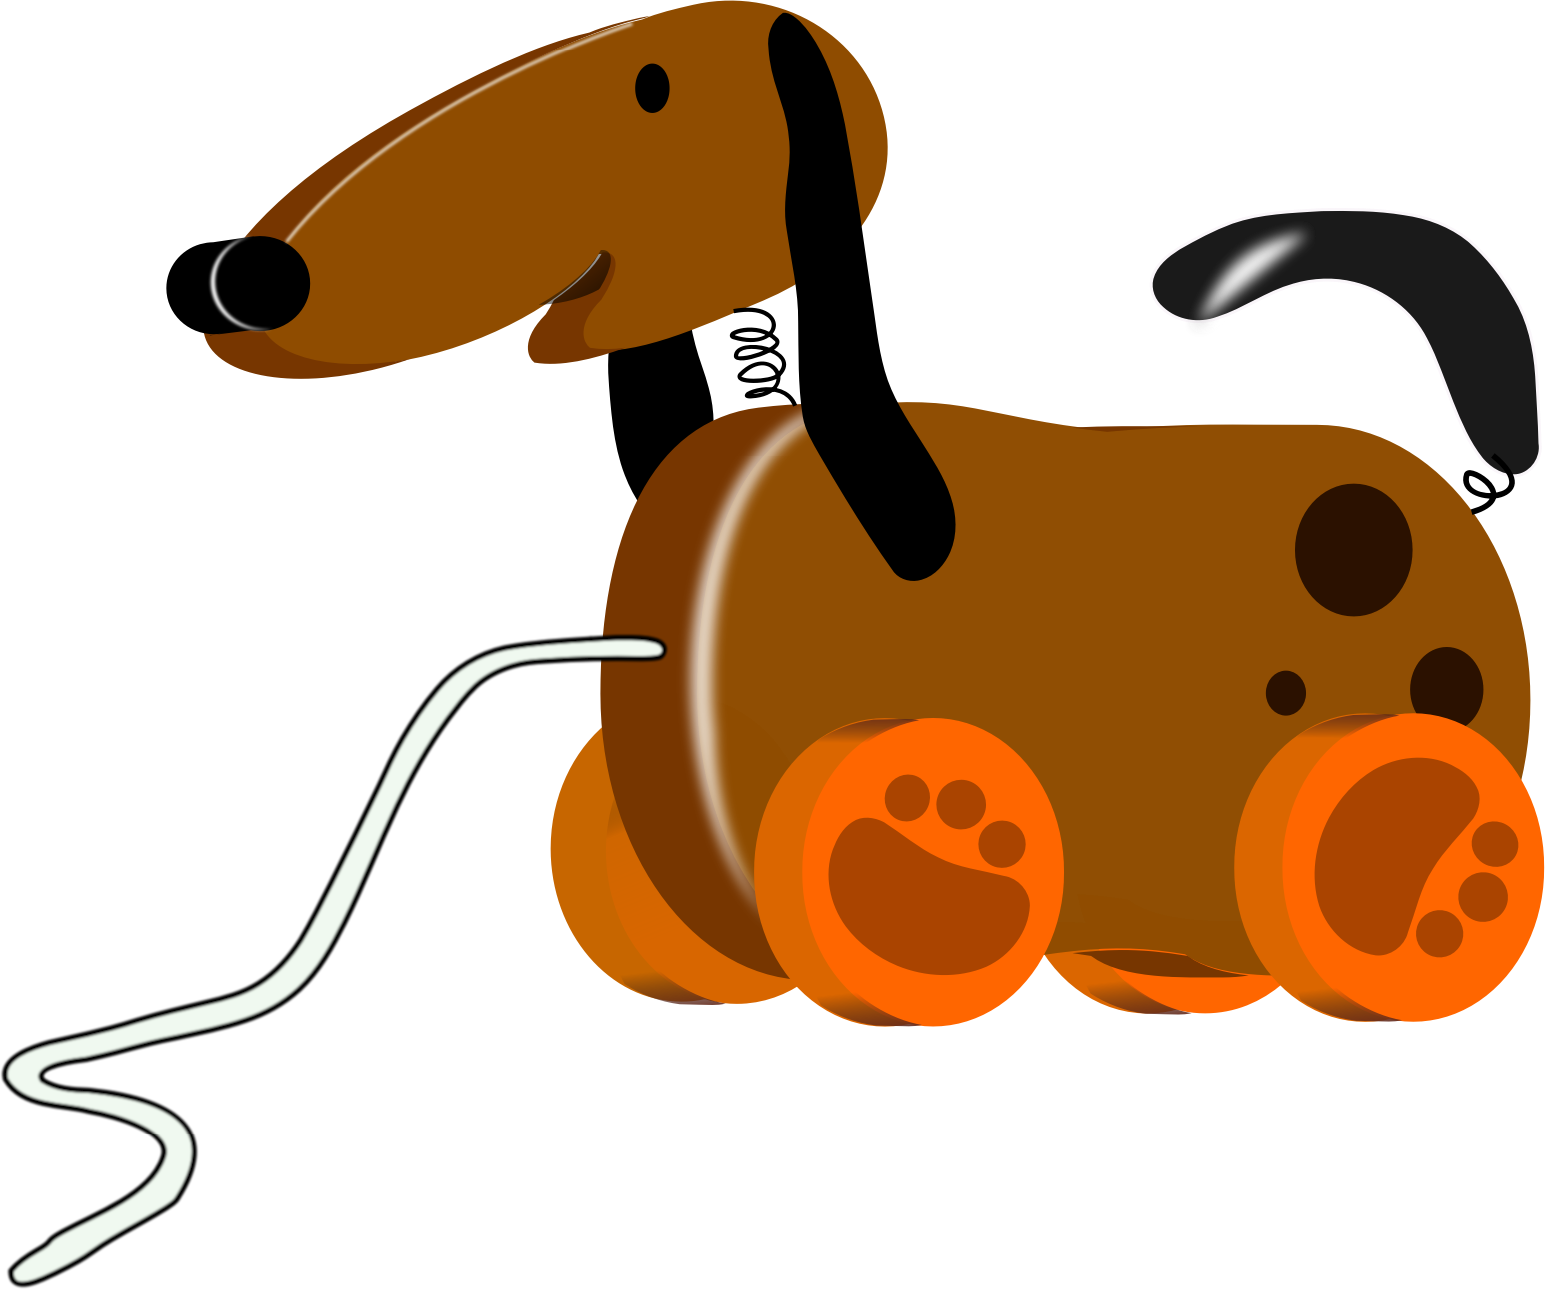 Dog bclipart toy pxbclipart. Dogs clipart brown